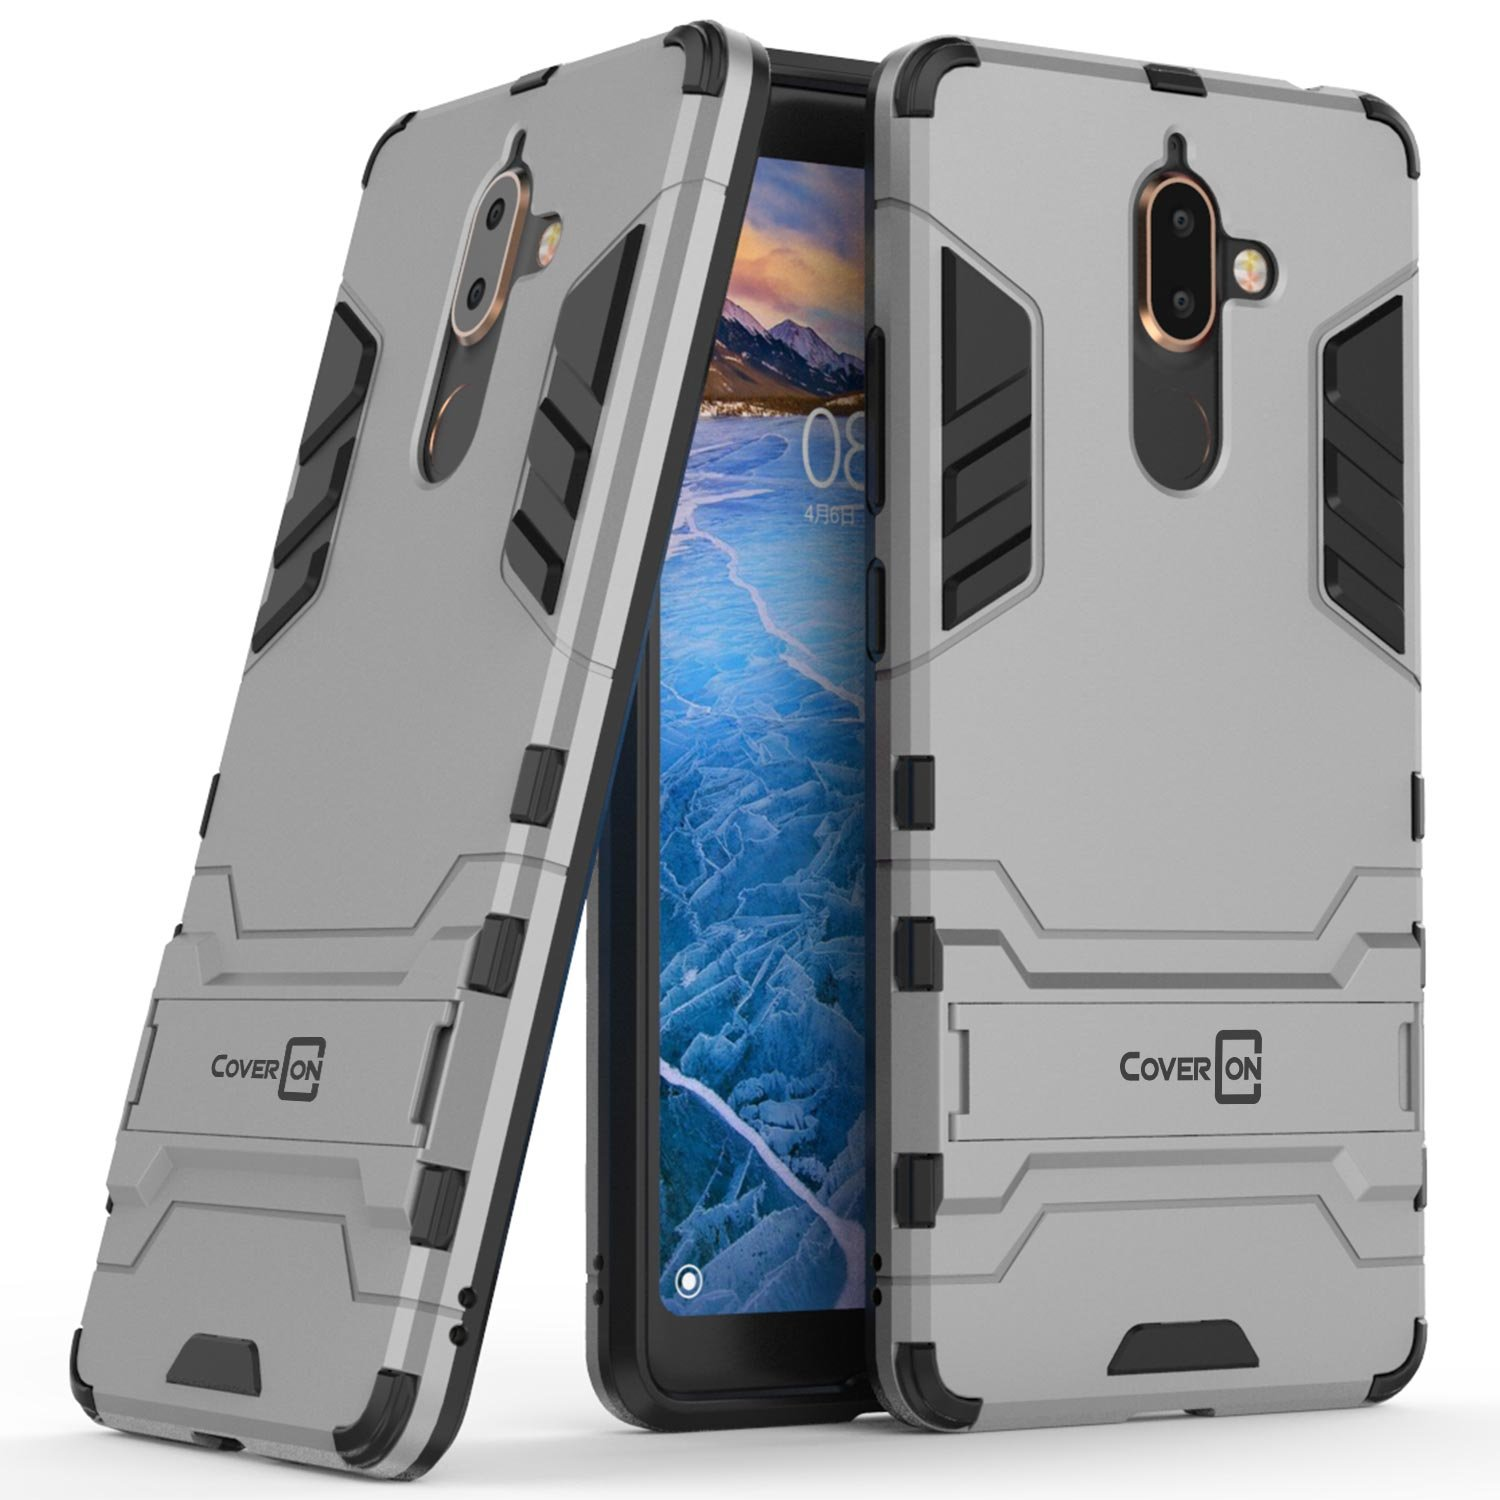 Nokia 7 Plus Case, CoverON [Shadow Armor Series] Hybrid Slim Fit Matte Phone Cover Case with Kickstand for Nokia 7 Plus - Silver & Black